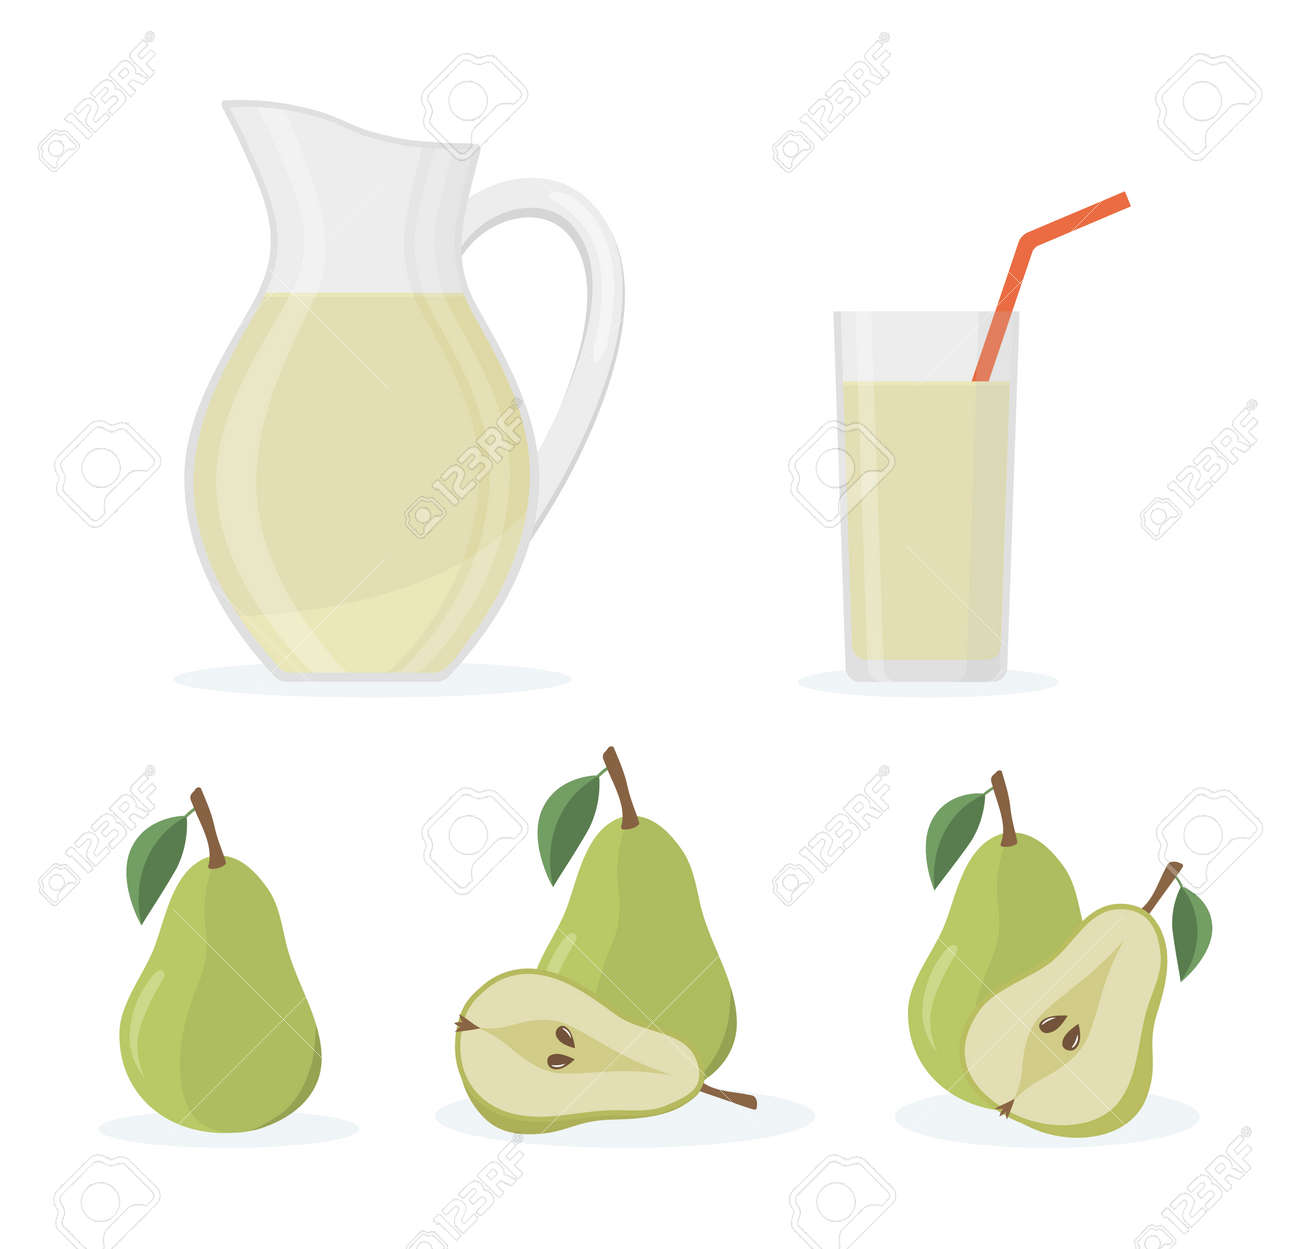 Set of fresh whole and cut pear, jug and glass of pear juice. Isolated on white background. Flat style vector illustration. - 156486092